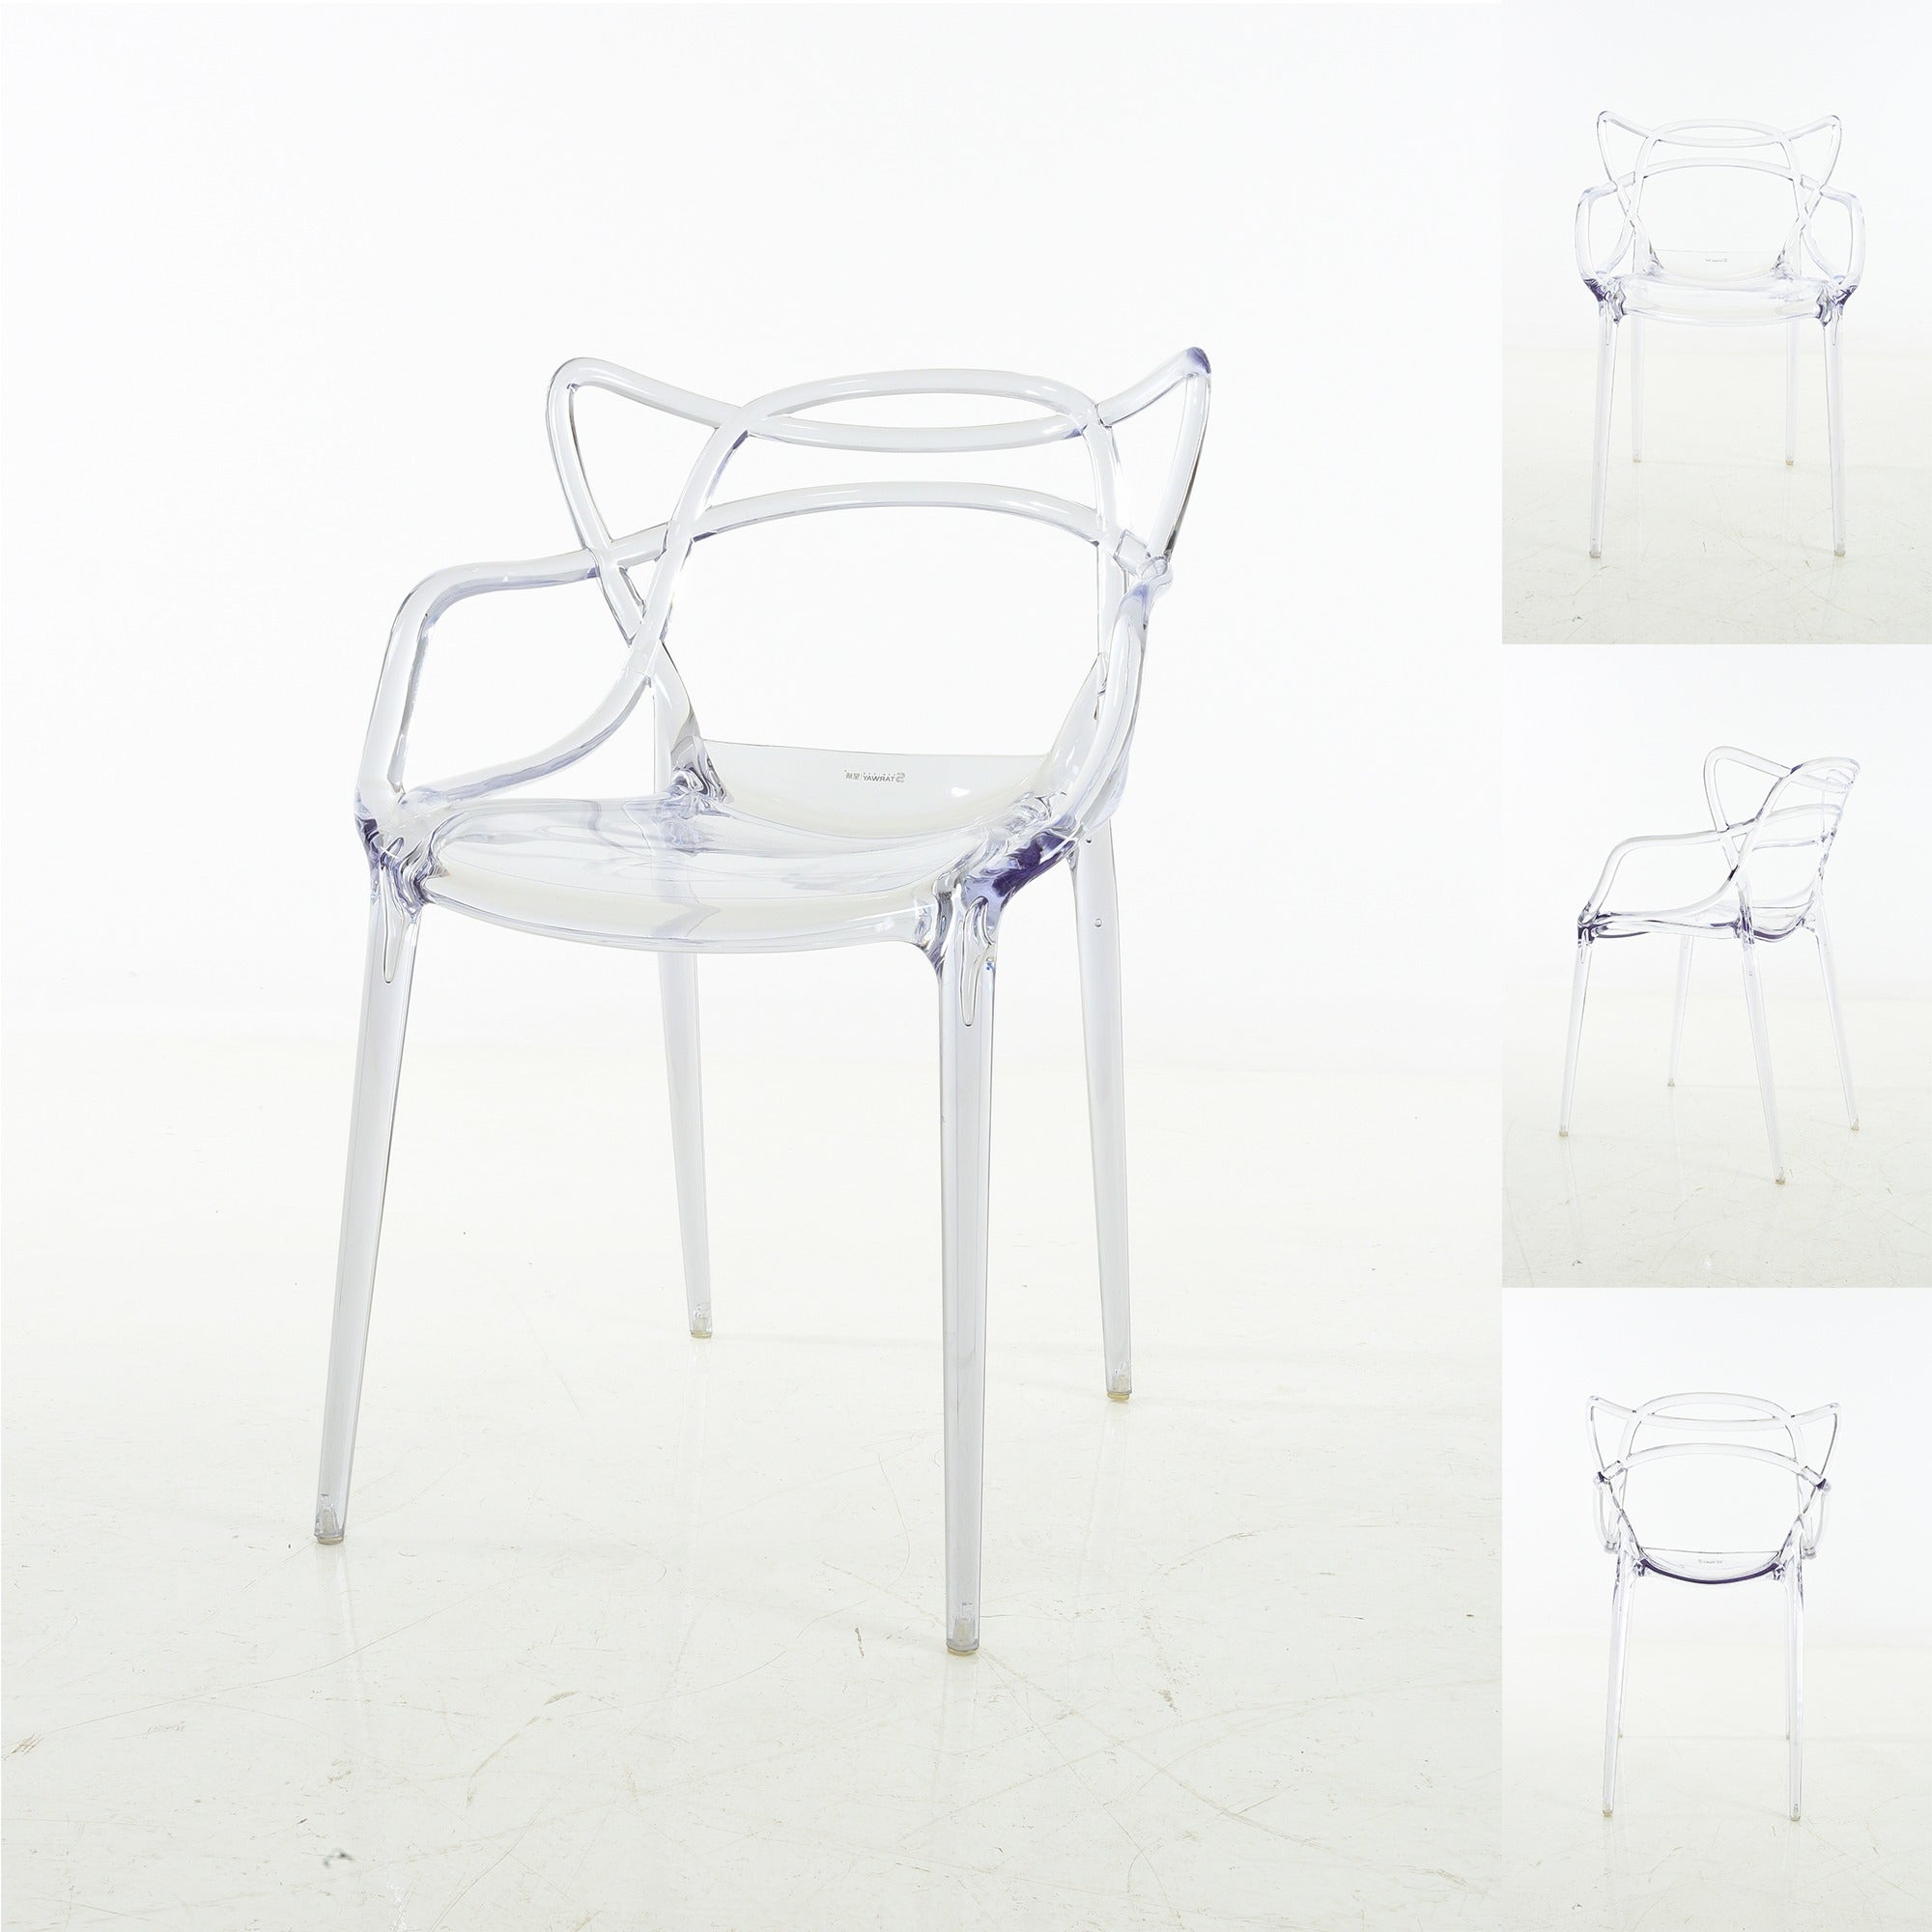 Shop Enstrudel Transparent Polycarbonate Dining Chairs (Set Of 2)   On Sale    Free Shipping Today   Overstock.com   19983972